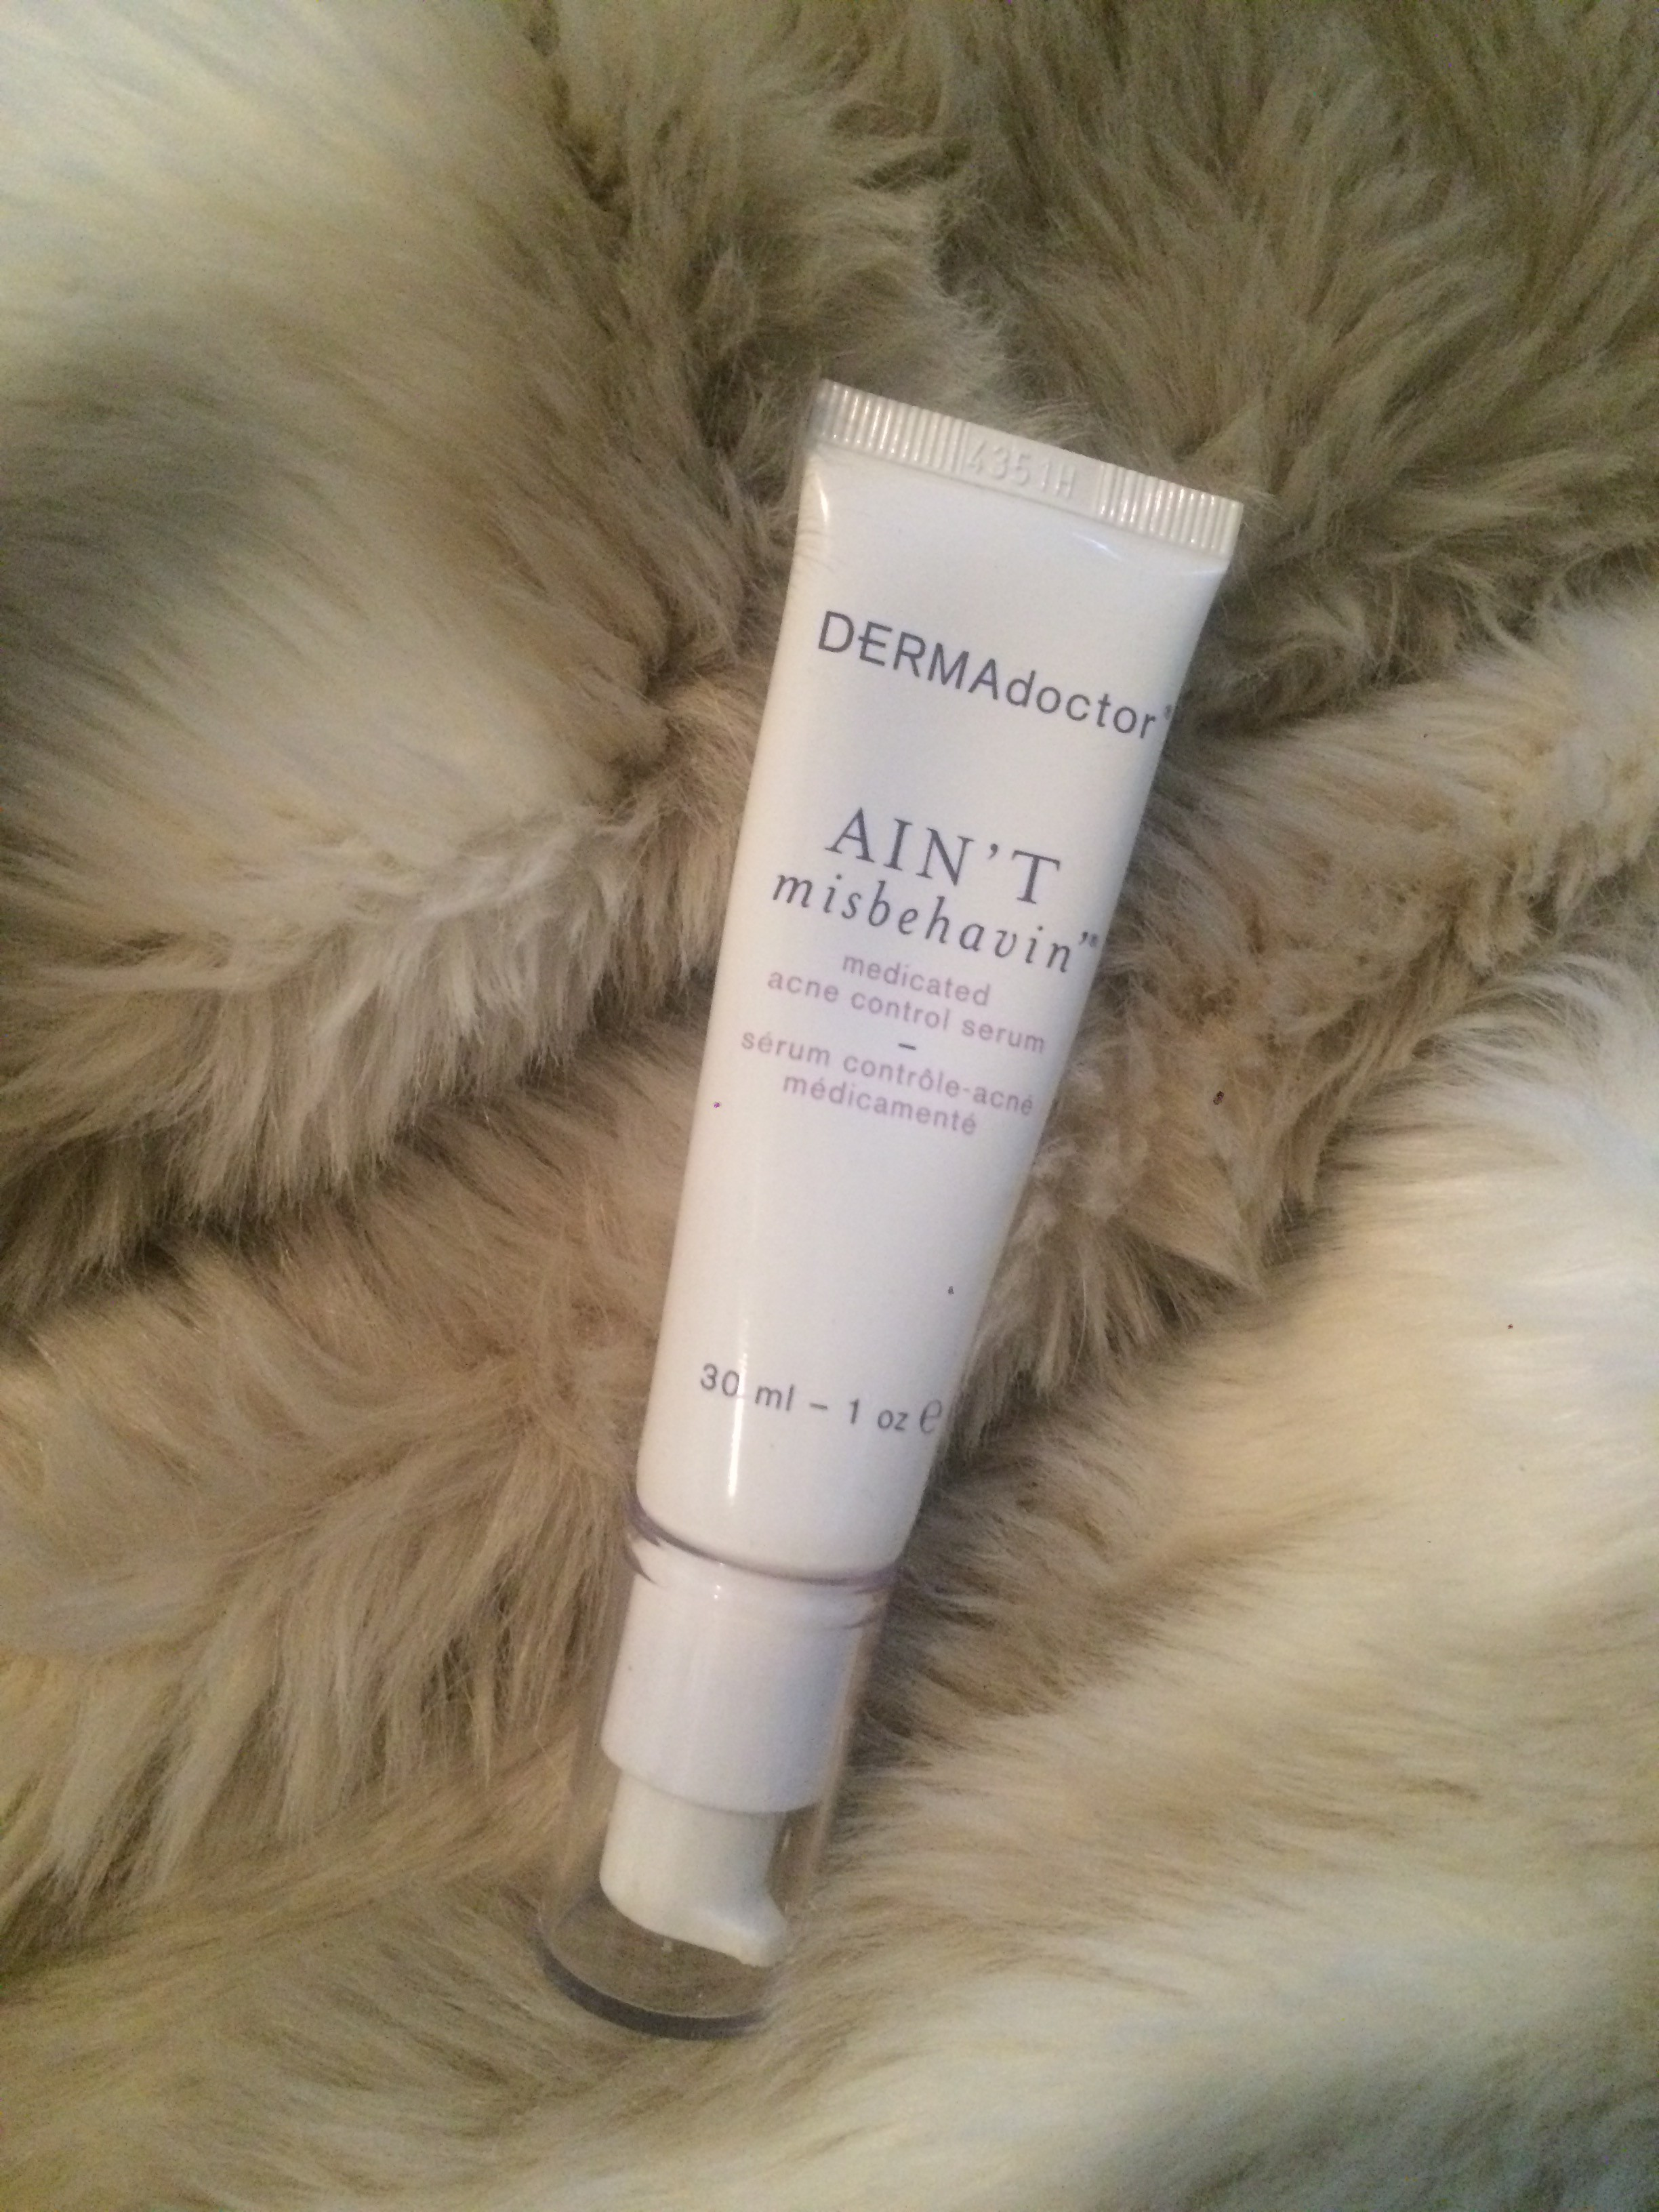 Aint Misbehavin Acne Serum & Cleanser Duo by dermadoctor #20